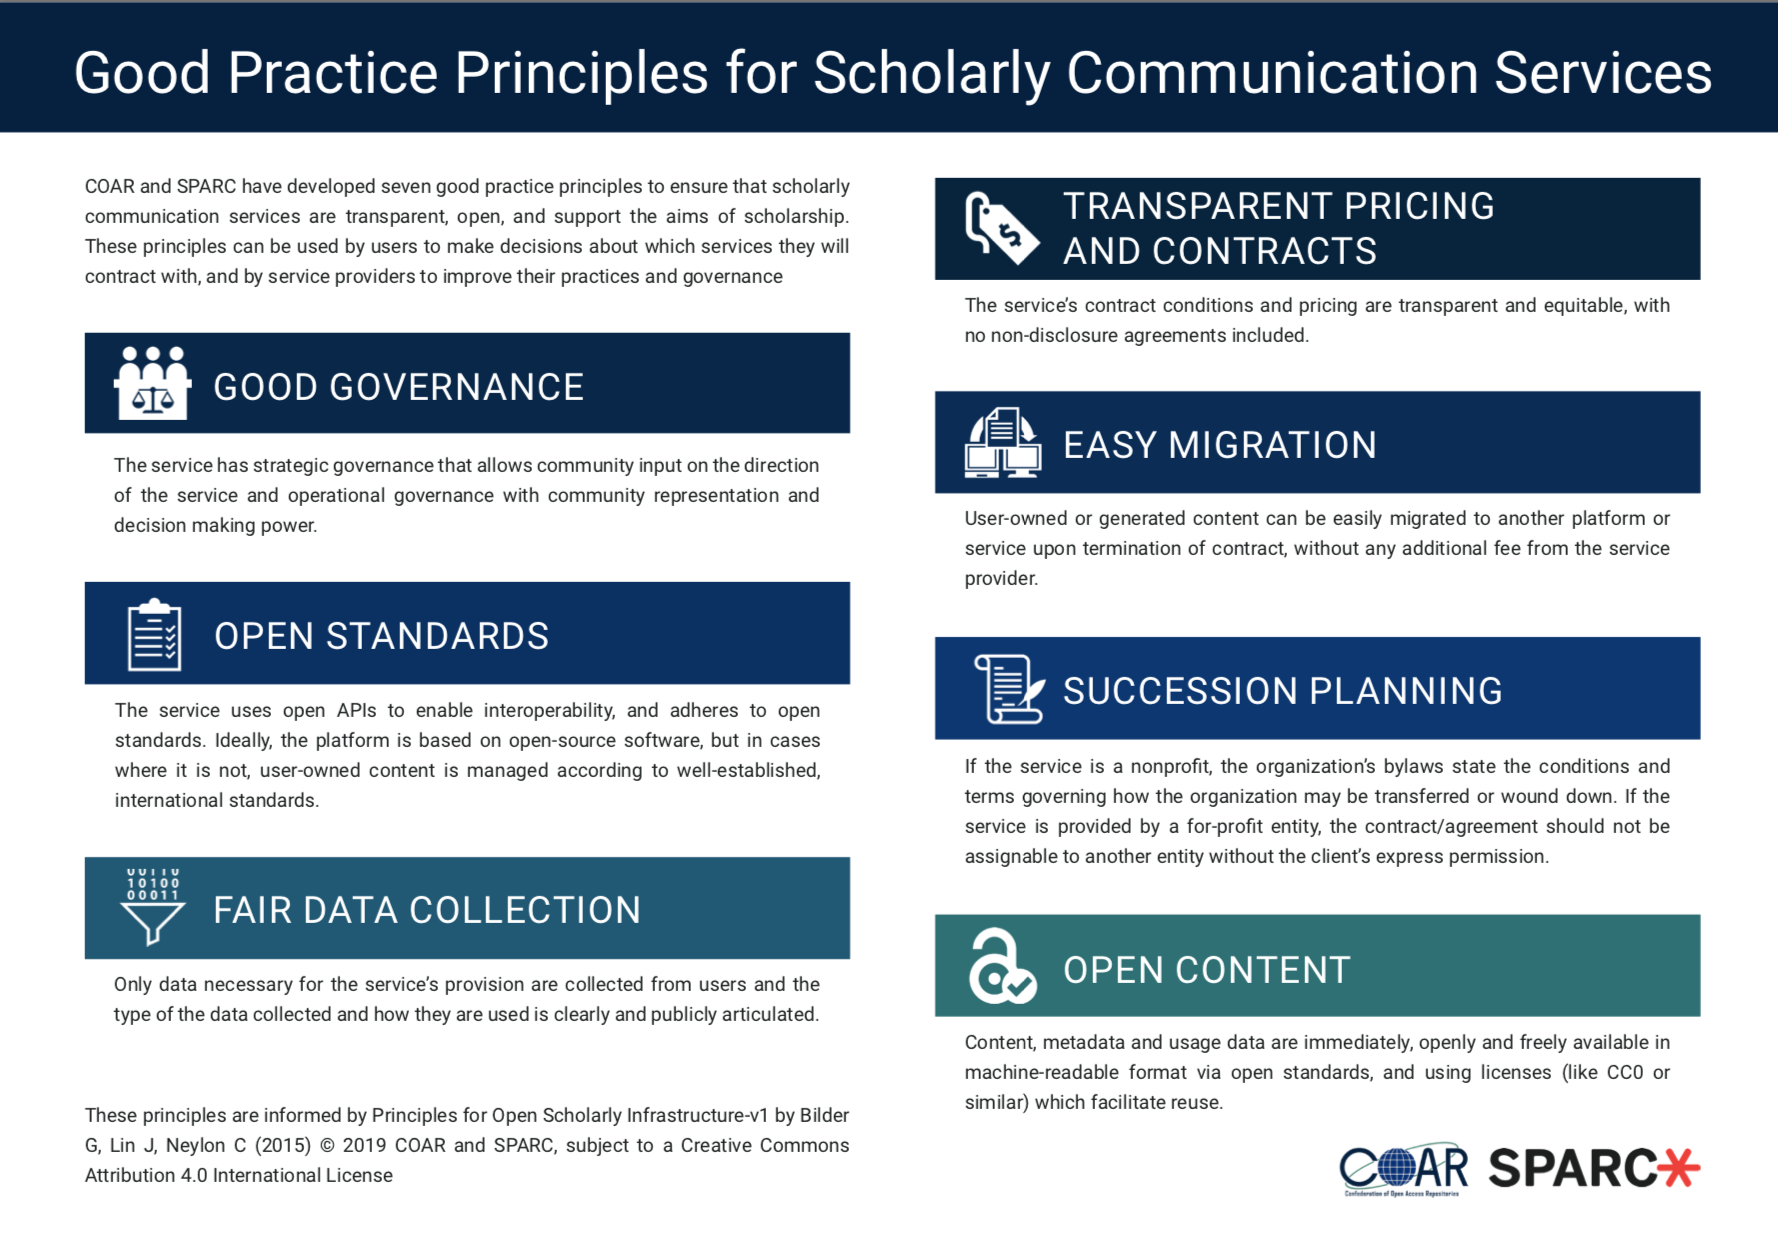 Good Practice Principles for Scholarly Communication Services